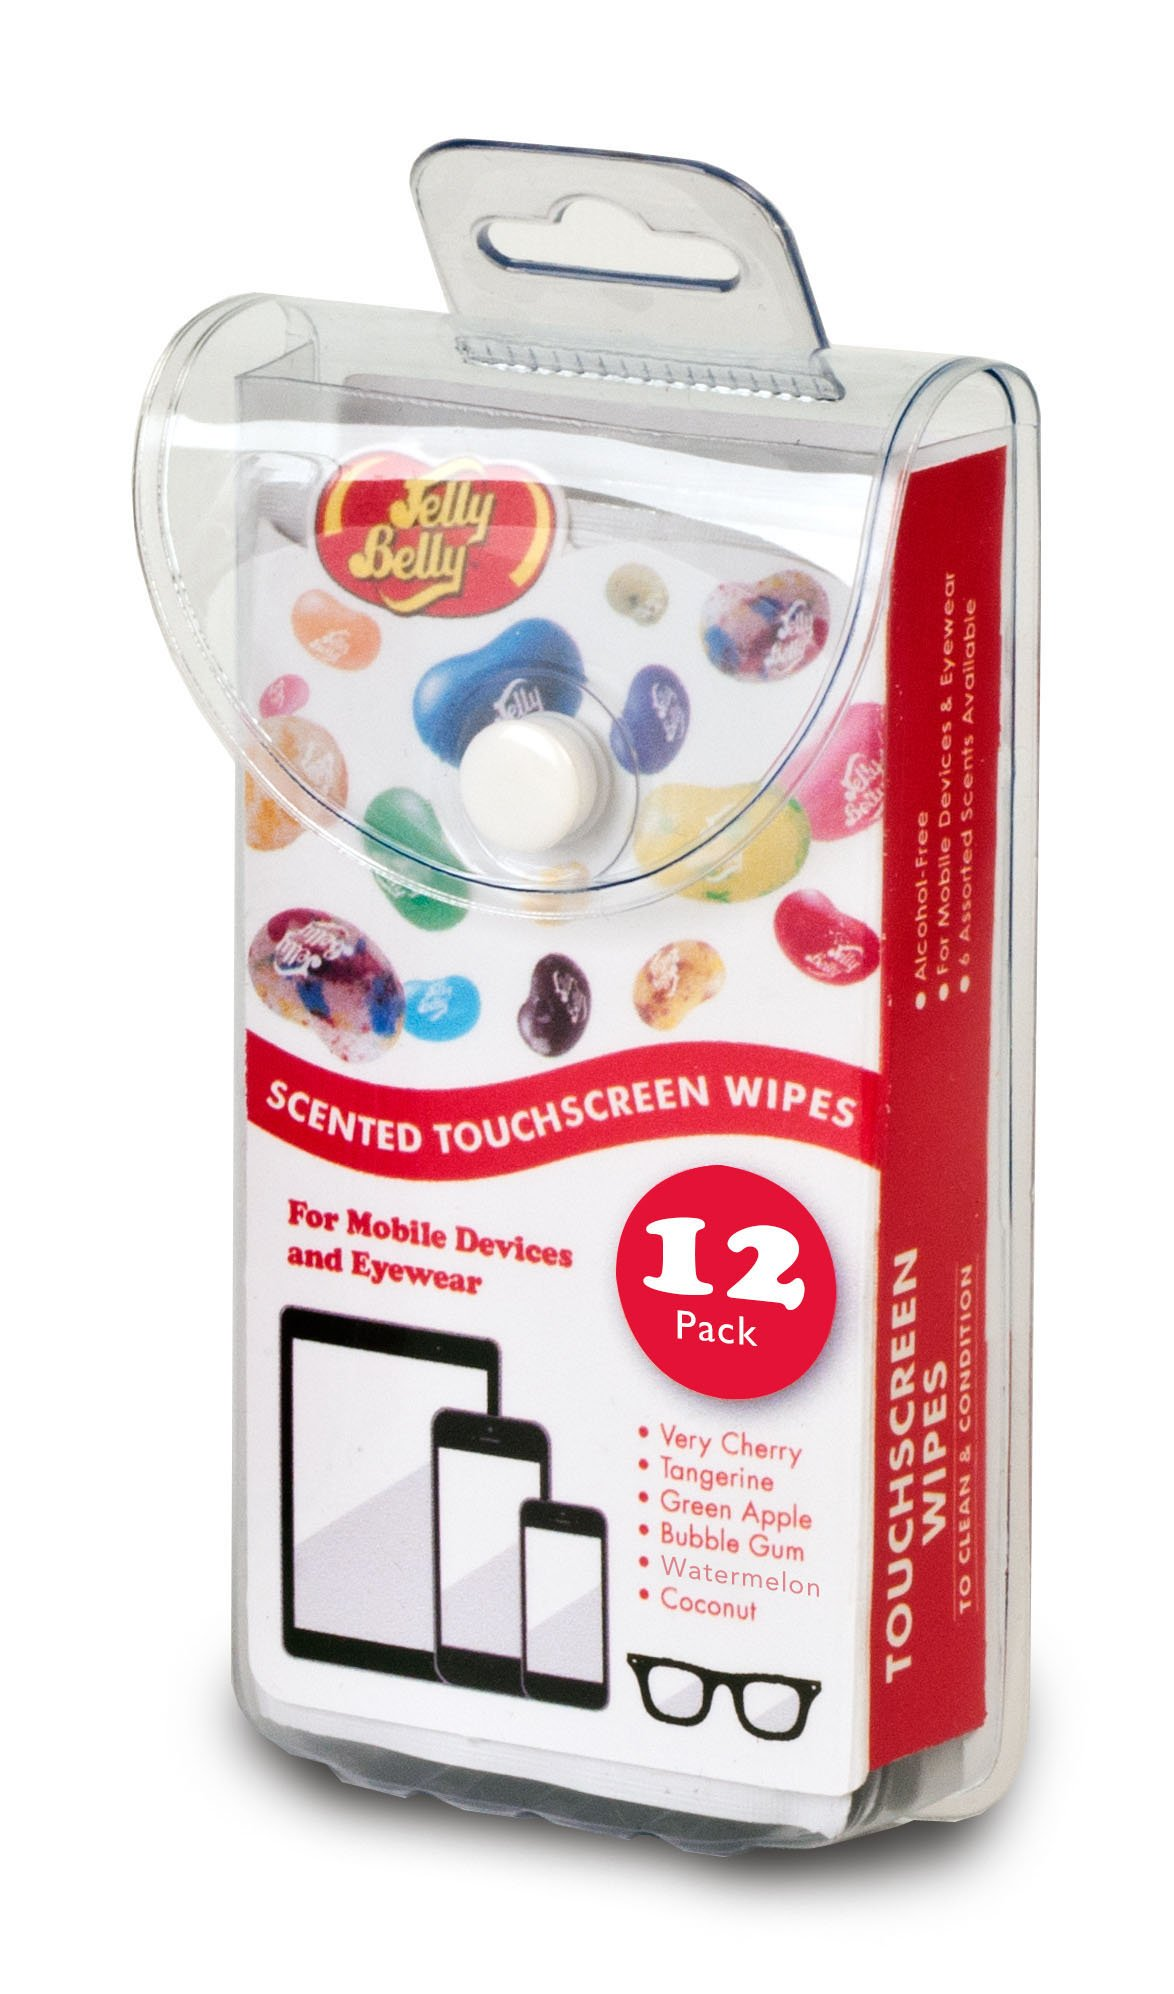 Jelly Belly Scented Alcohol Free Touchscreen Wipes for Mobile Devices and Eyewear (12 Wipes in Assorted Scents)